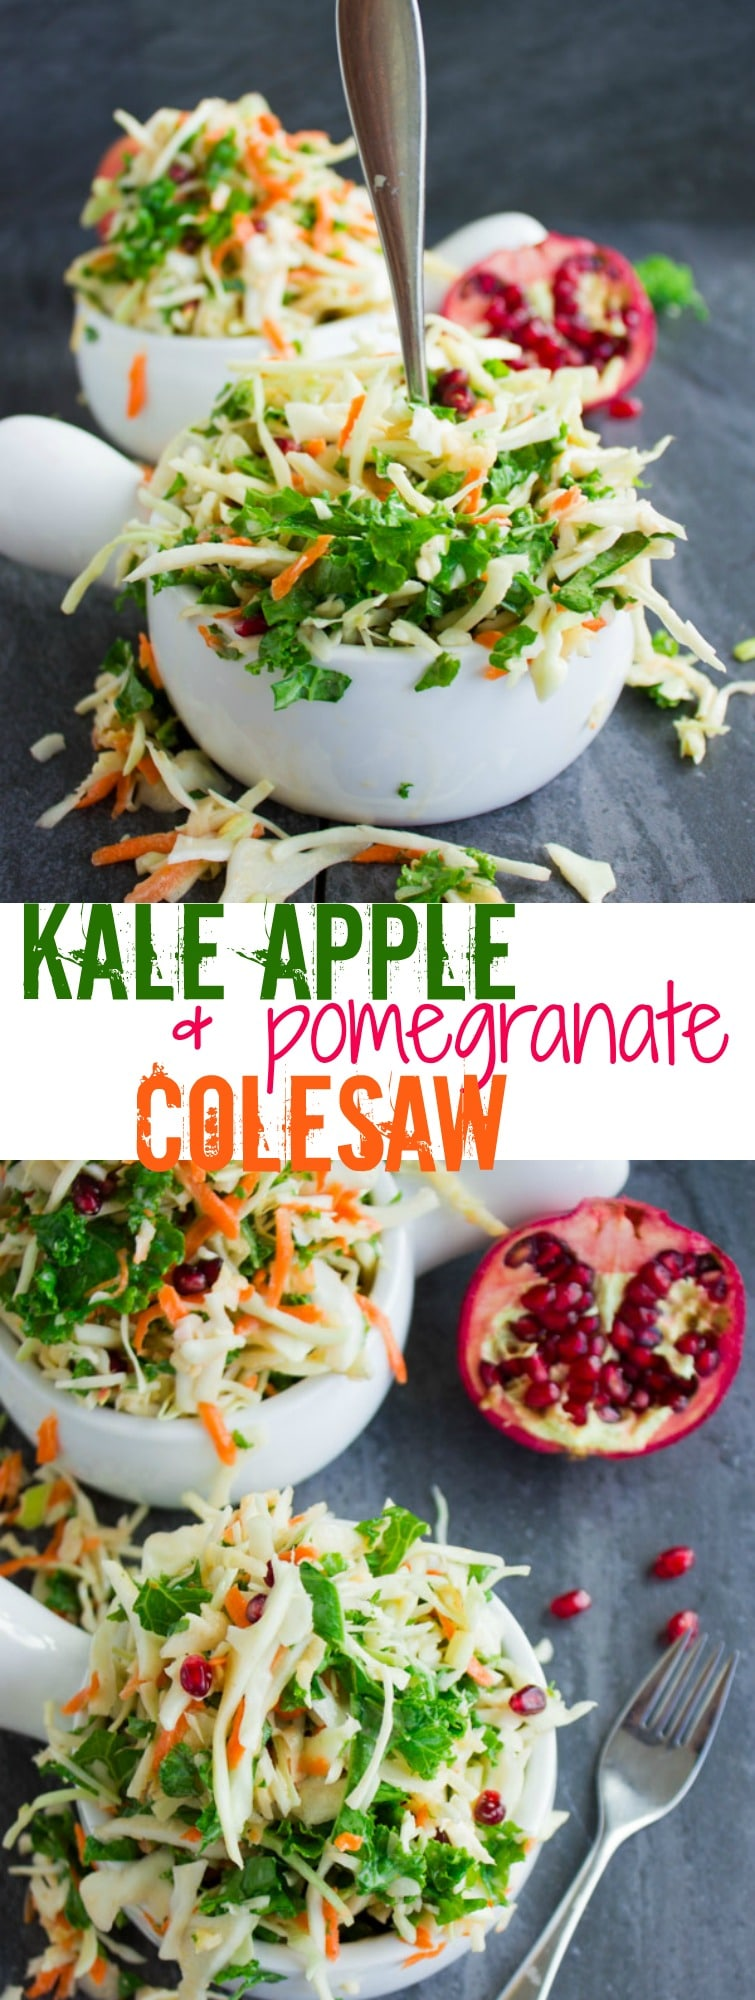 Coleslaw with Kale, Apple & Pomegranate | This light and healthy Coleslaw with Kale, Apples and Pomegranate is one of my favorite slaw recipes. It's refreshing and zesty enough to be served as a side salad for any meal, yet at the same time sufficiently filling and satisfying to make your perfect low-carb lunch. #side, #healthy, #thanksgiving, #salad, #healthy, #coleslaw, #dressing